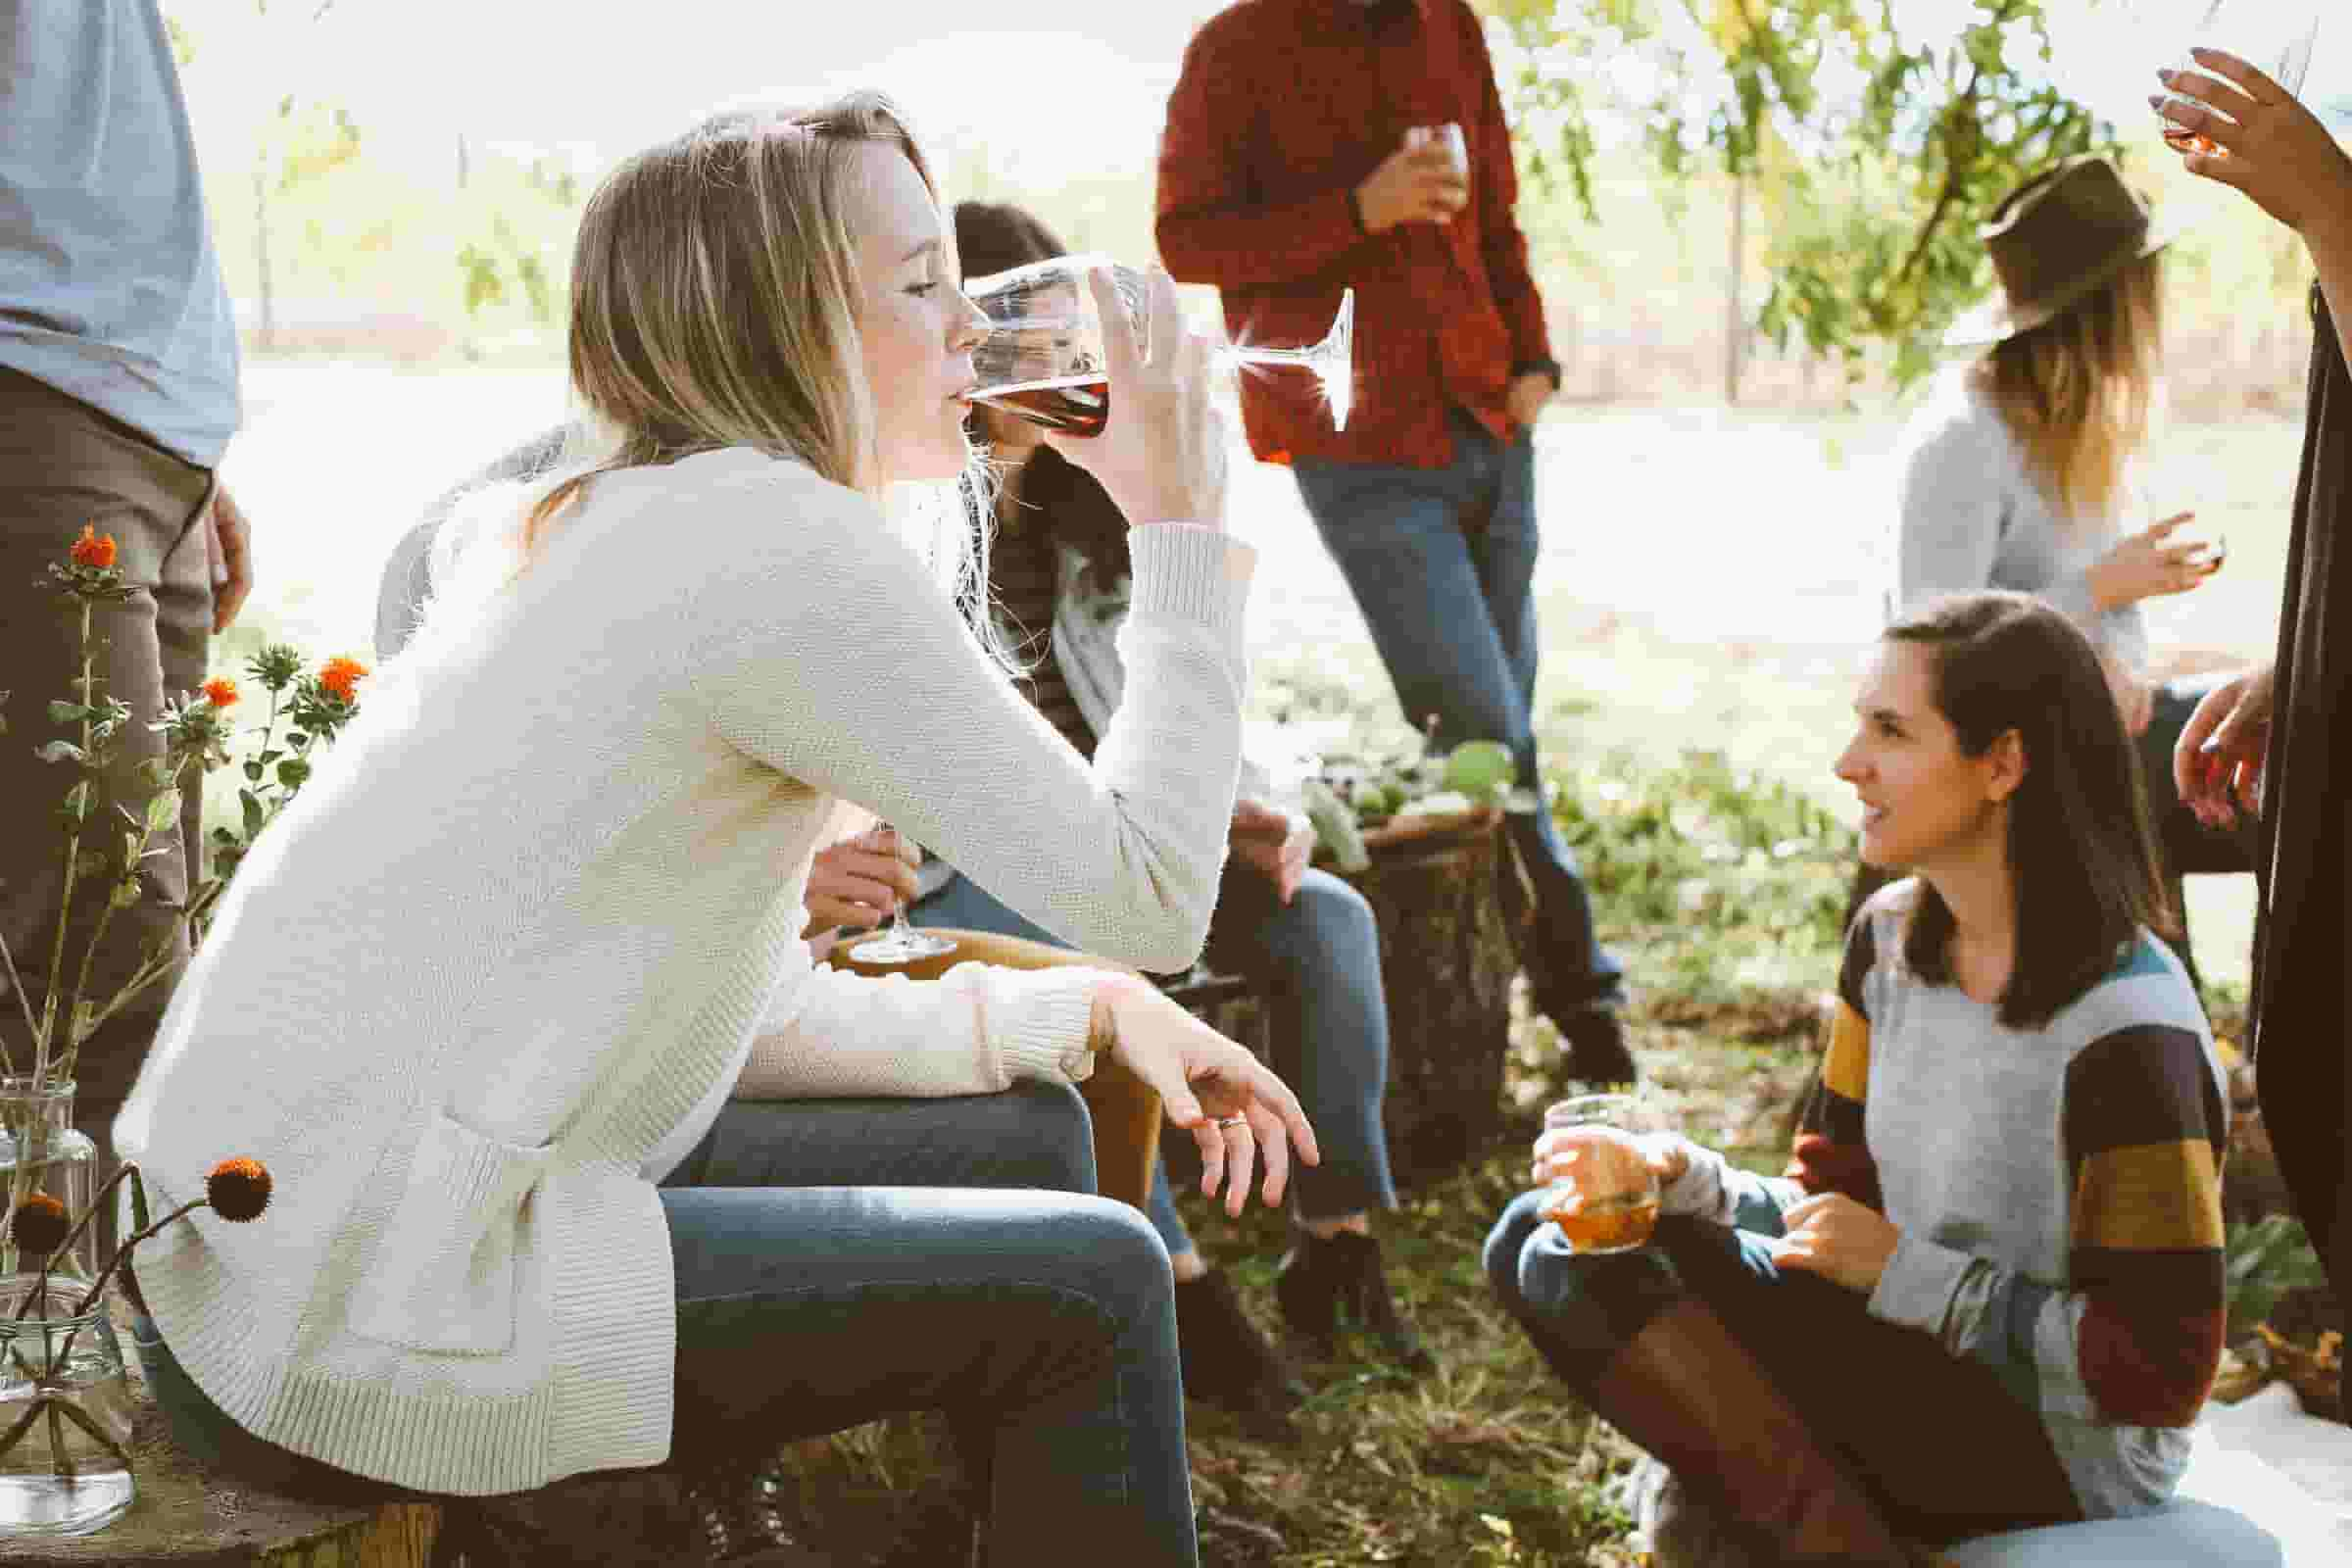 Clay pigeon shooting safety tips; A woman enjoying a glass of wine on a sunny day.